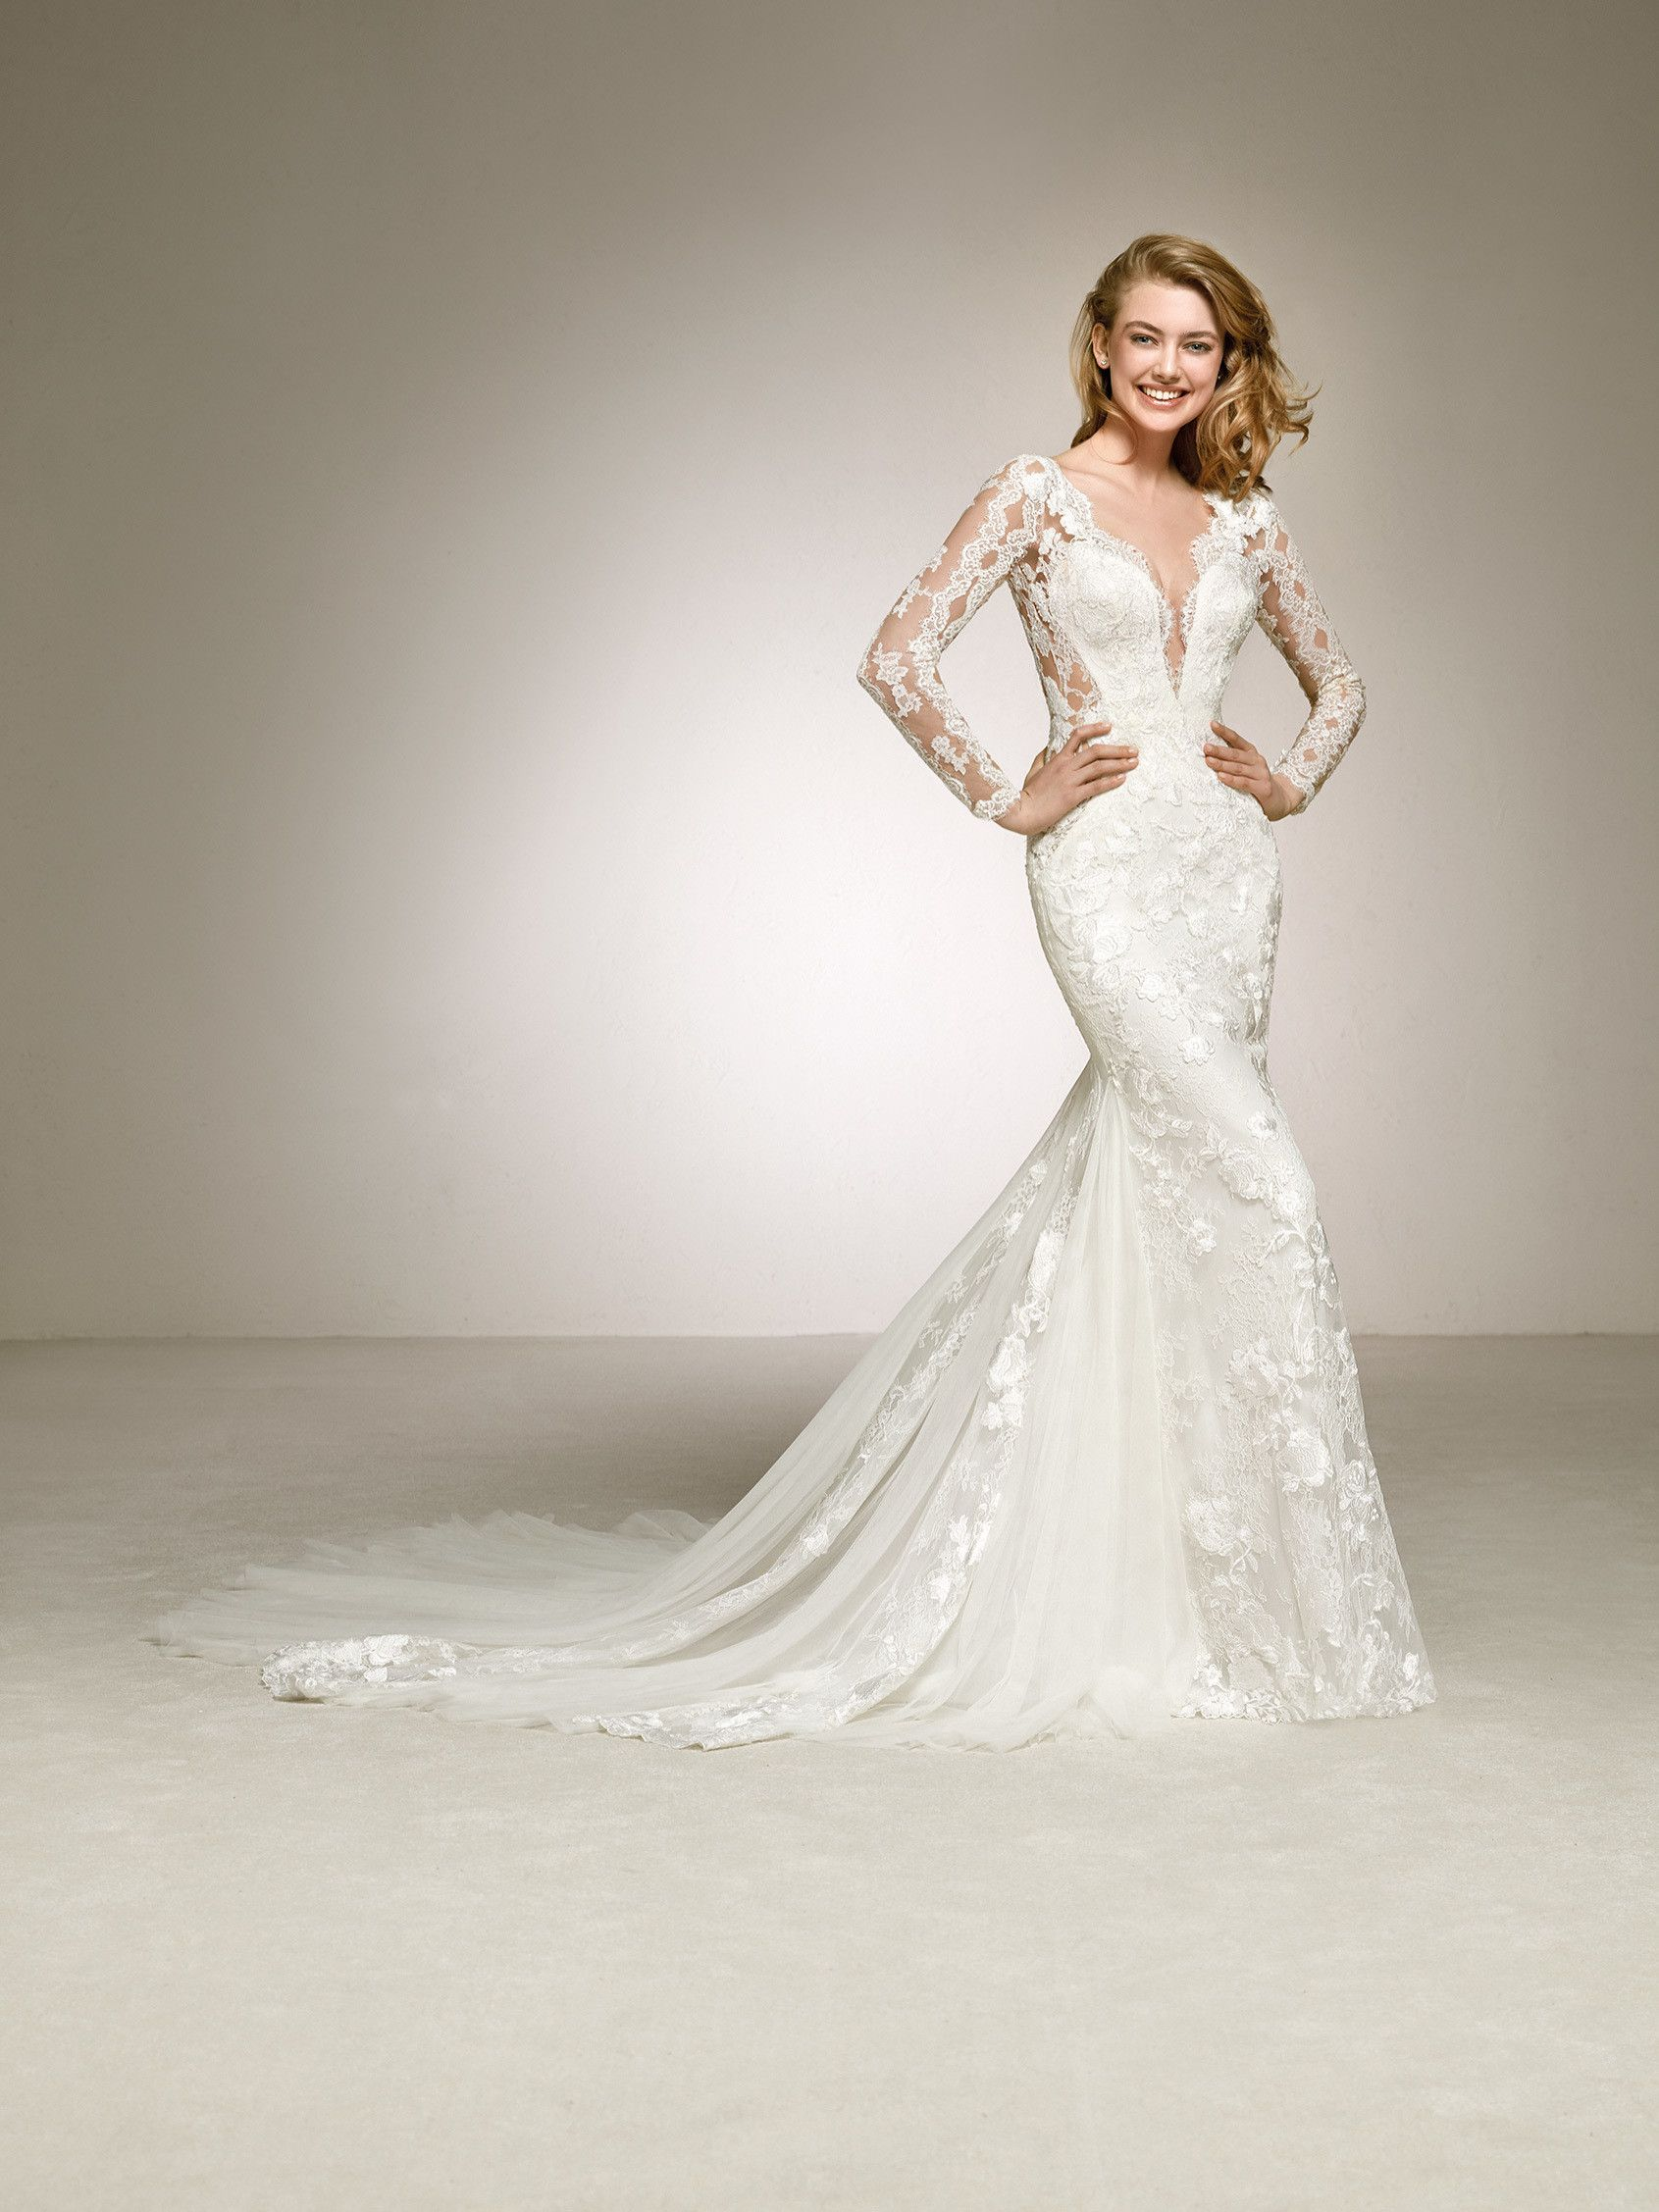 807236466a6c Pronovias 2018 Style DAMARIS Tulle, lace and sheer sides -ingredients of  this sexy wedding gown. A long sleeve, V-neck design featuring a mermaid  skirt with ...